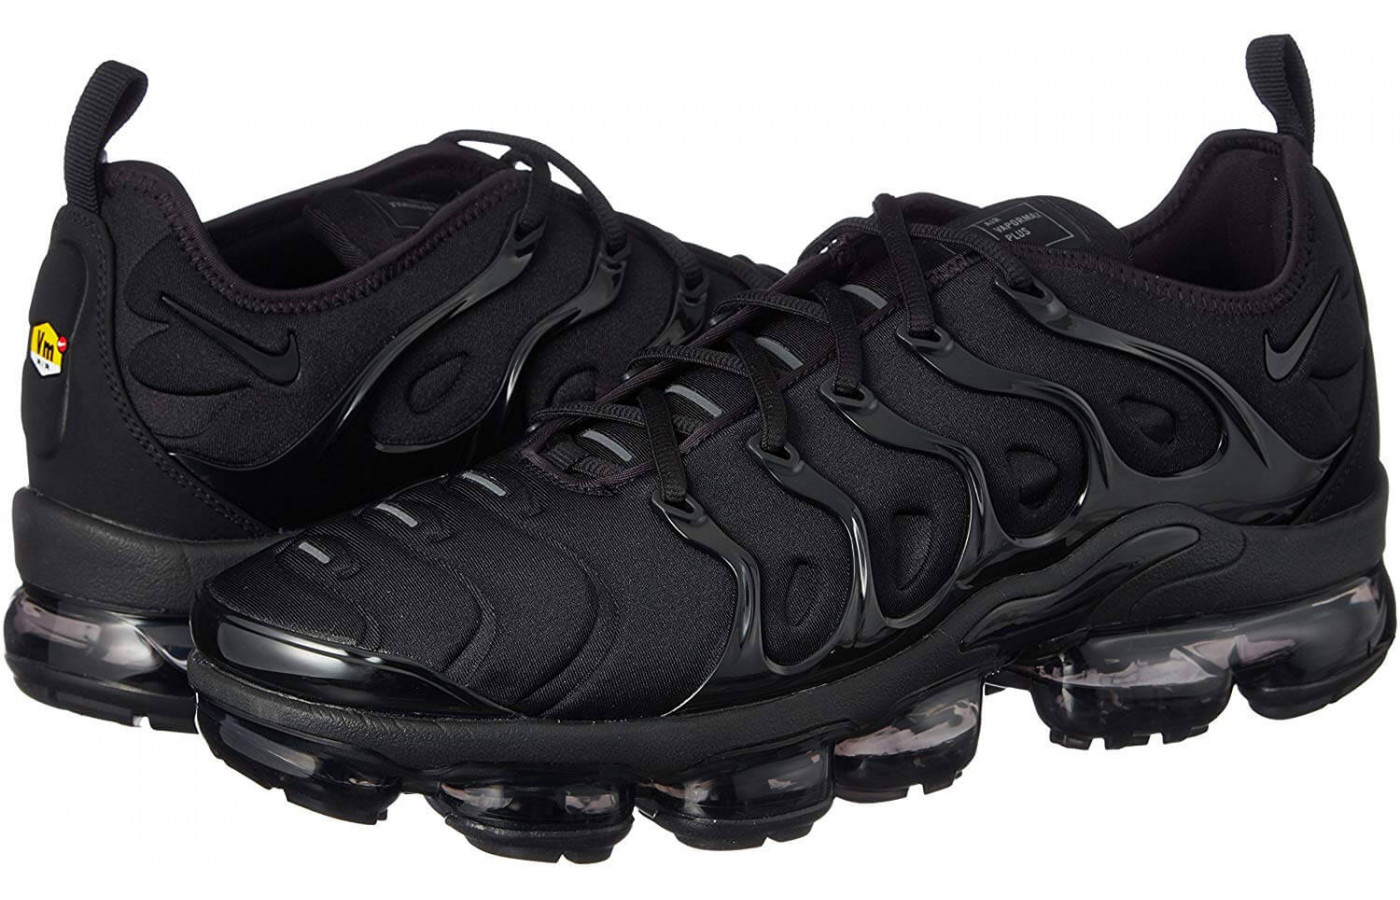 61887ce9b86 Nike Air VaporMax Plus Review - Buy or Not in May 2019